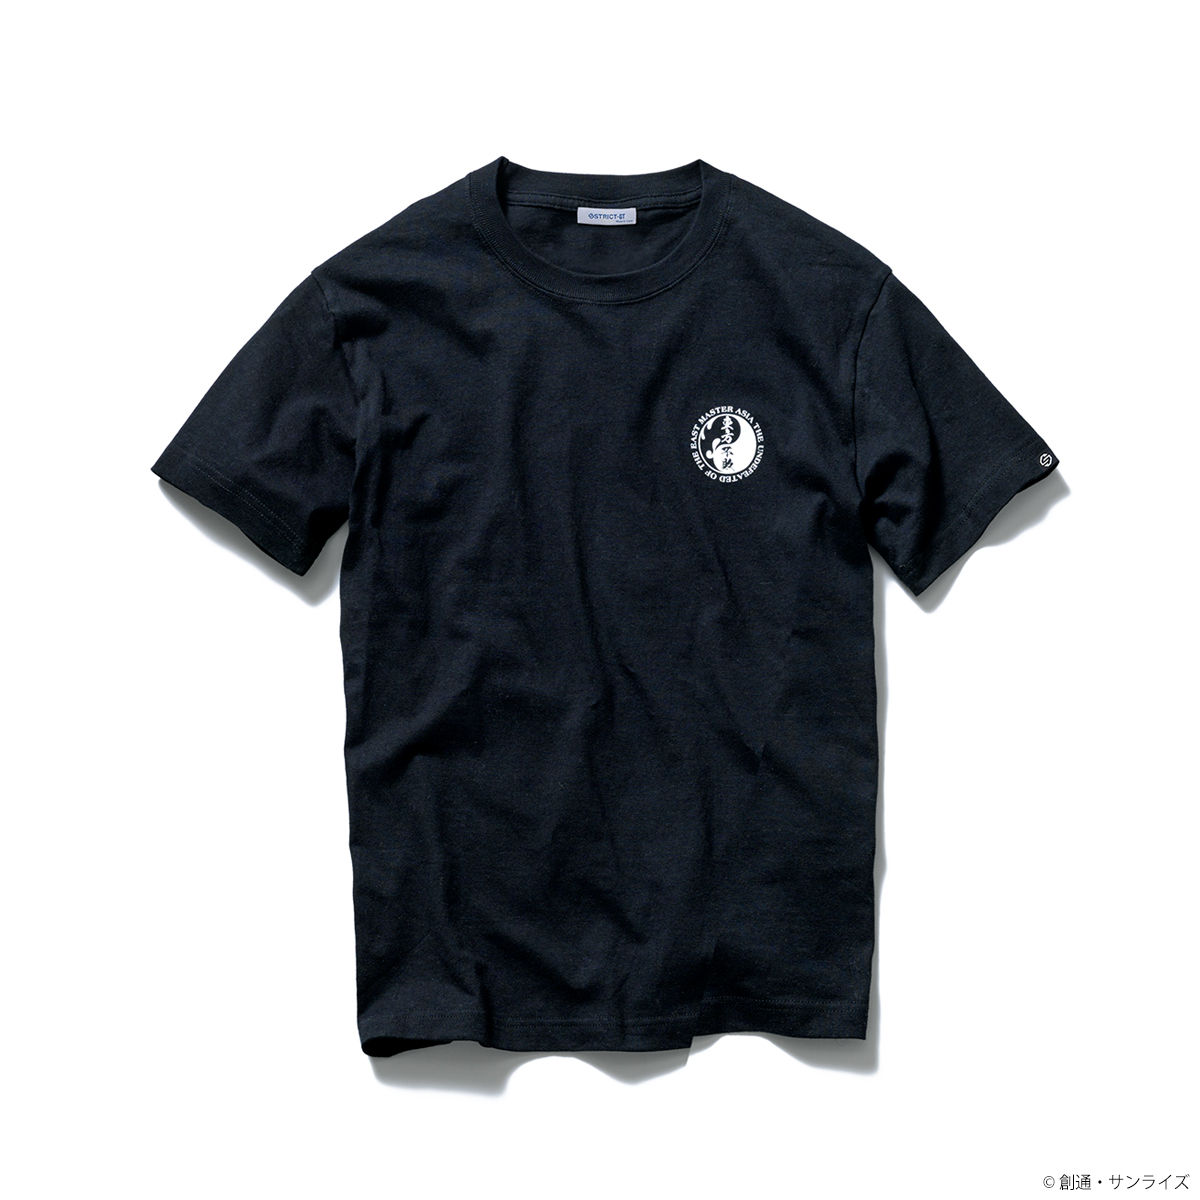 Undefeated of the East Emblem T-shirt—Mobile Fighter G Gundam/STRICT-G Collaboration